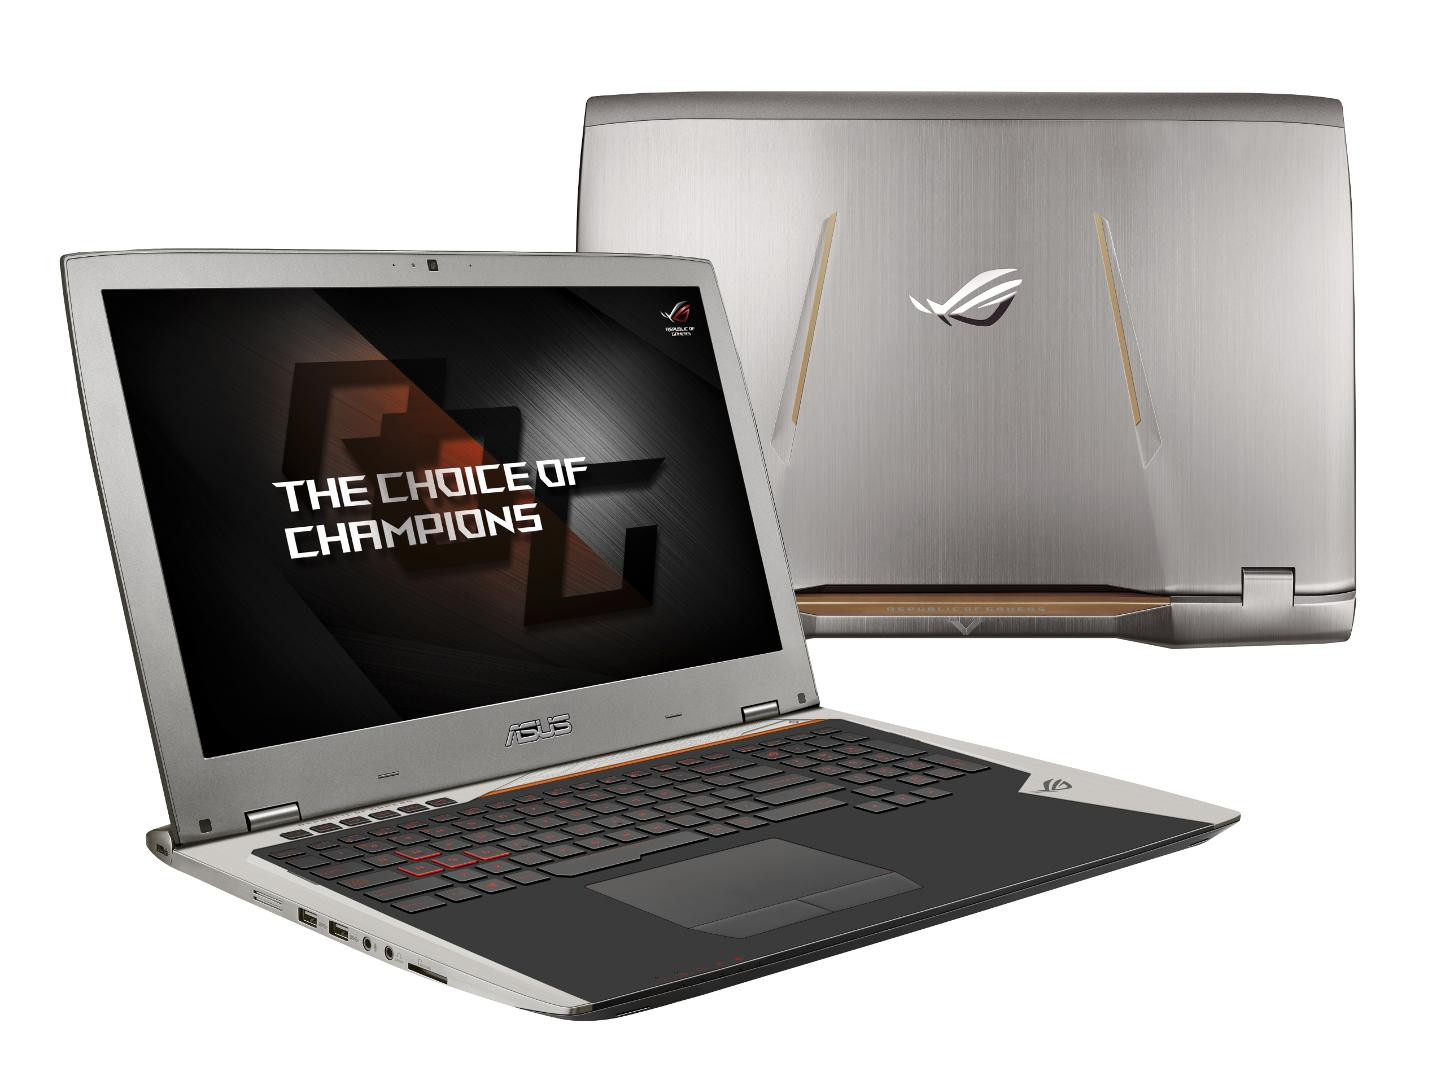 G701_front and back.jpg